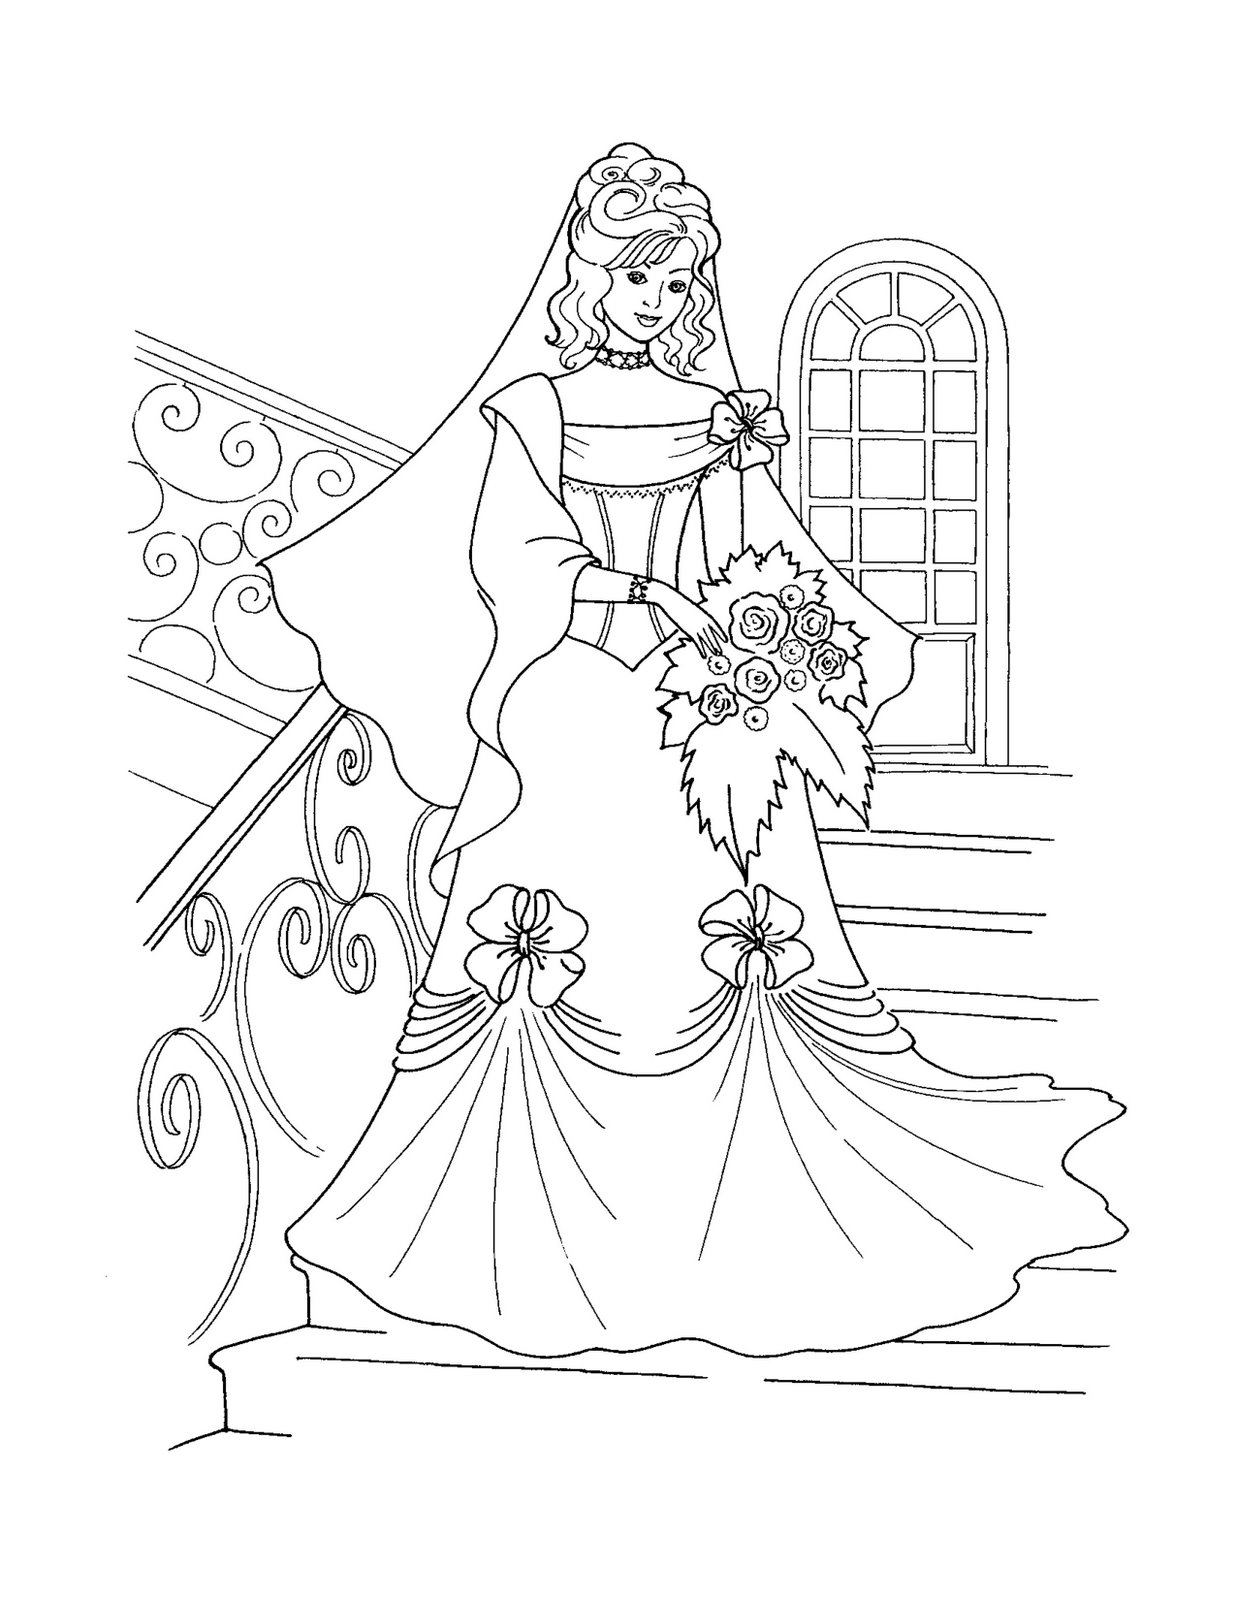 Free printable disney princess coloring pages for kids for Coloring book pages free